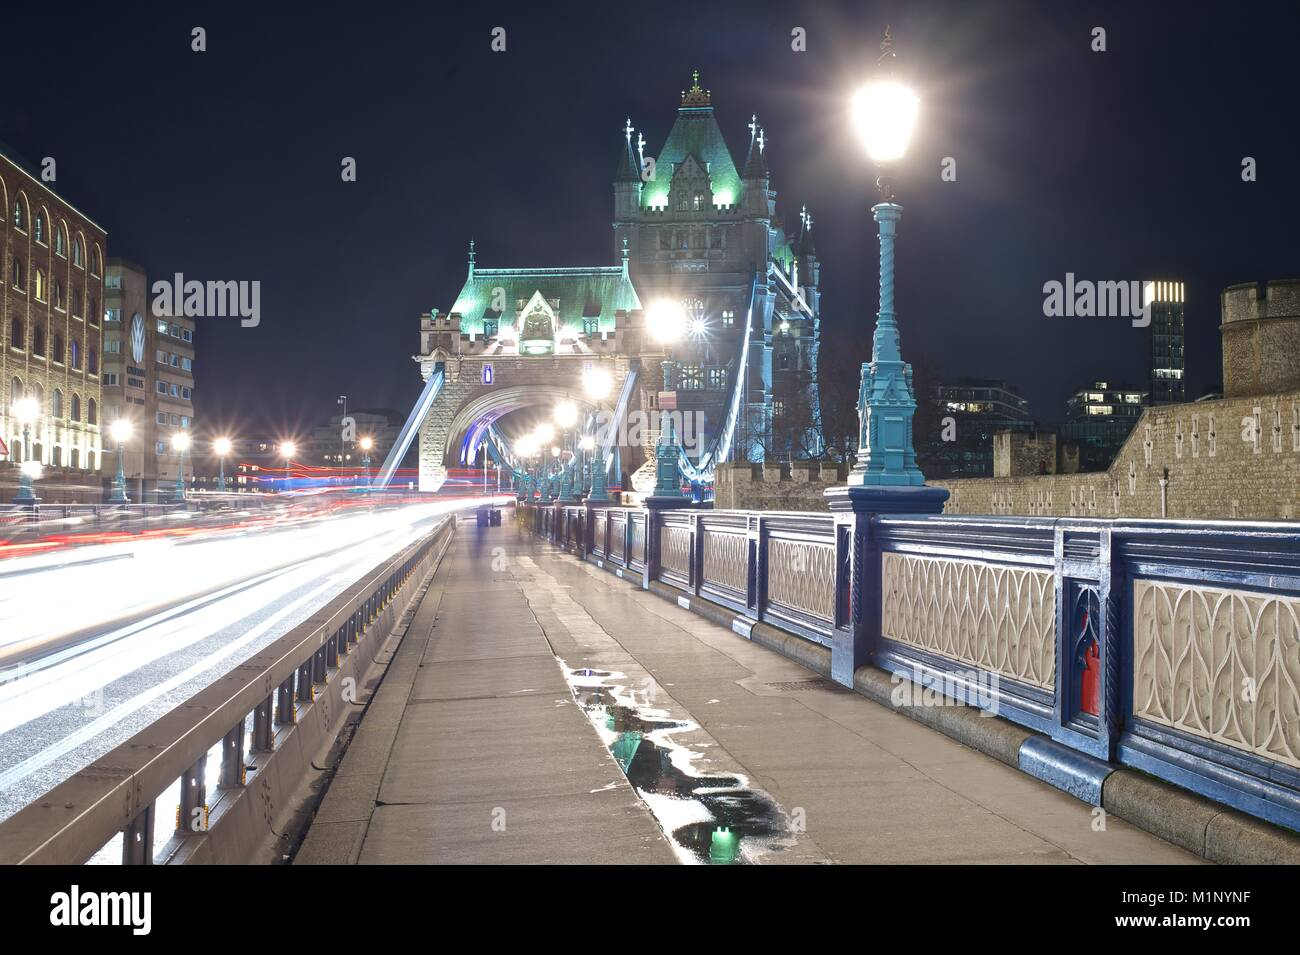 Tower Bridge, London - Stock Image